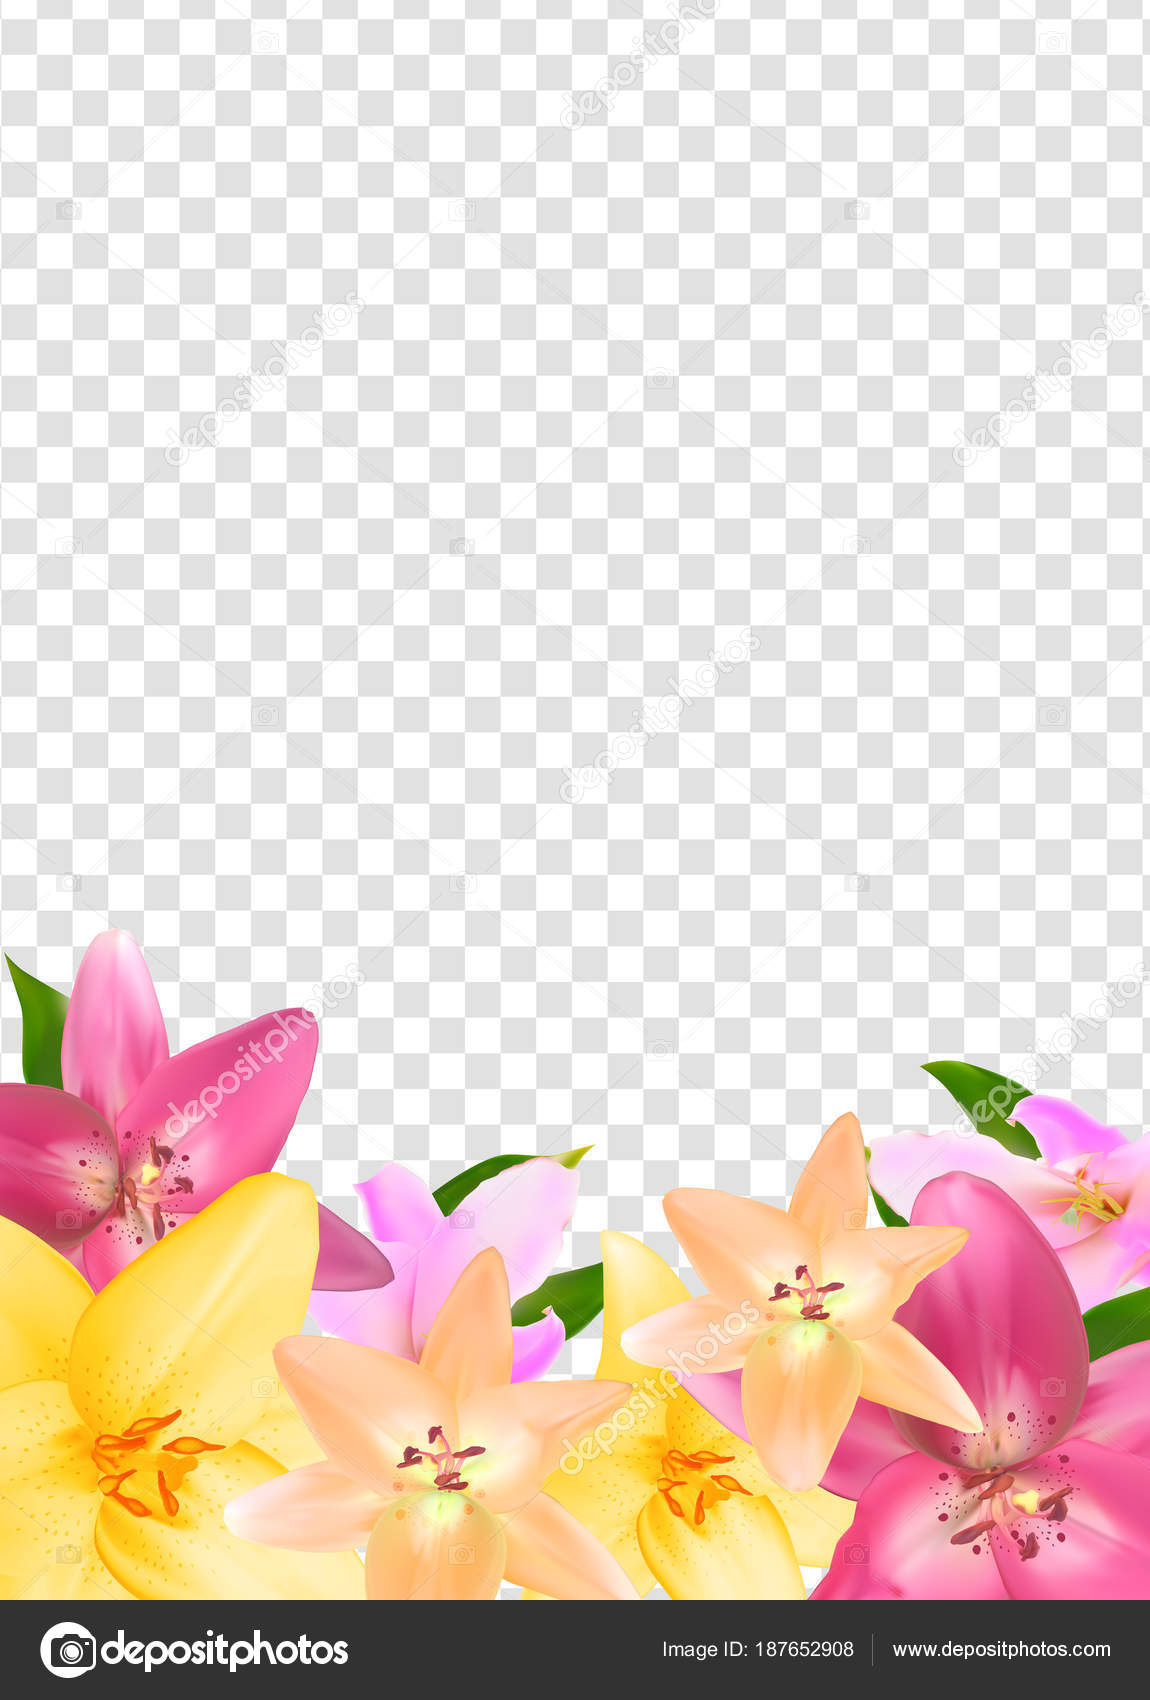 Summer Natural Floral Frame on Transparent Background Vector